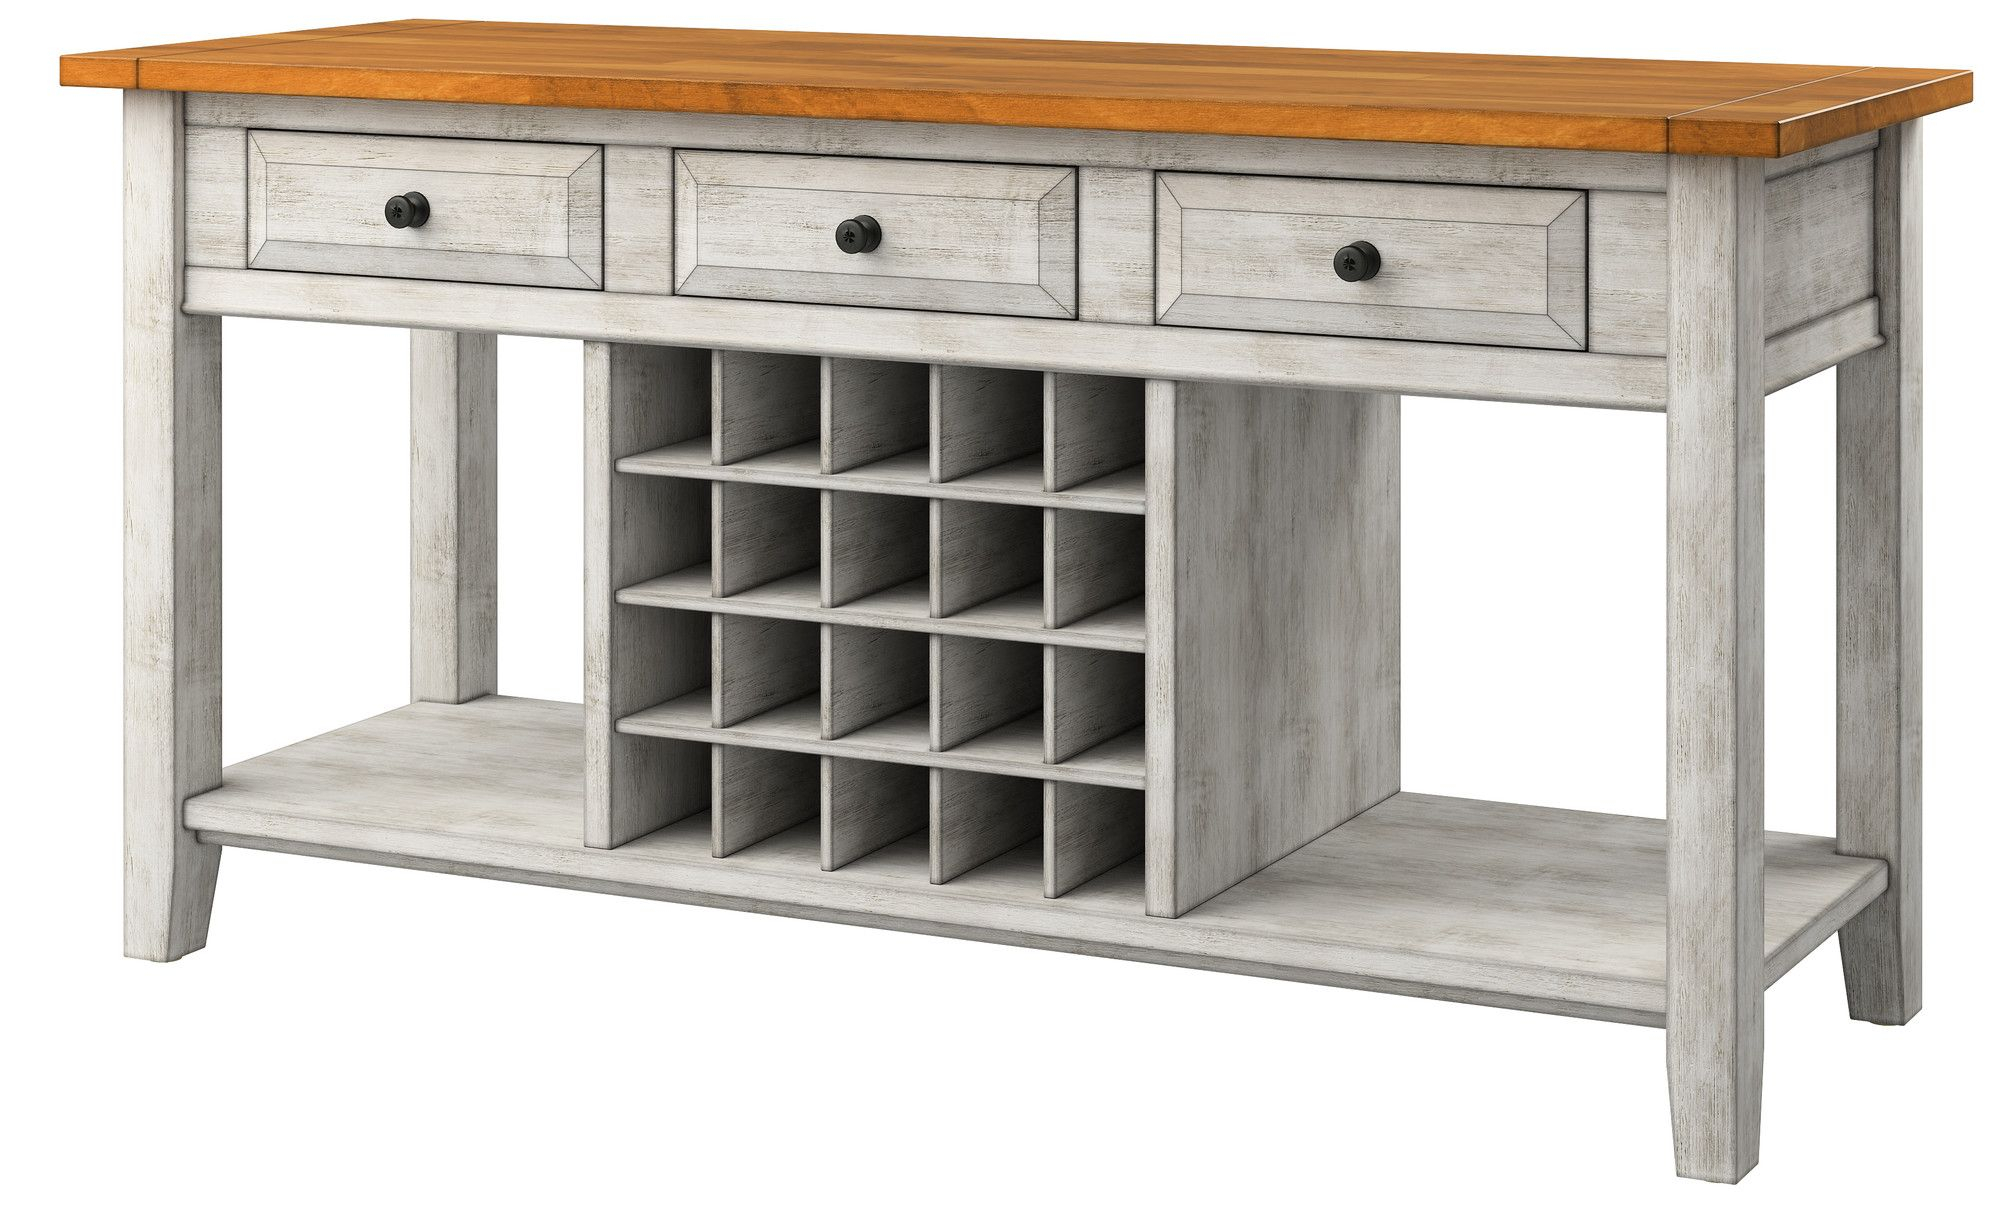 Fortville Sideboard | Products | Kitchen Buffet, Buffet In Most Popular Fortville Sideboards (View 7 of 20)